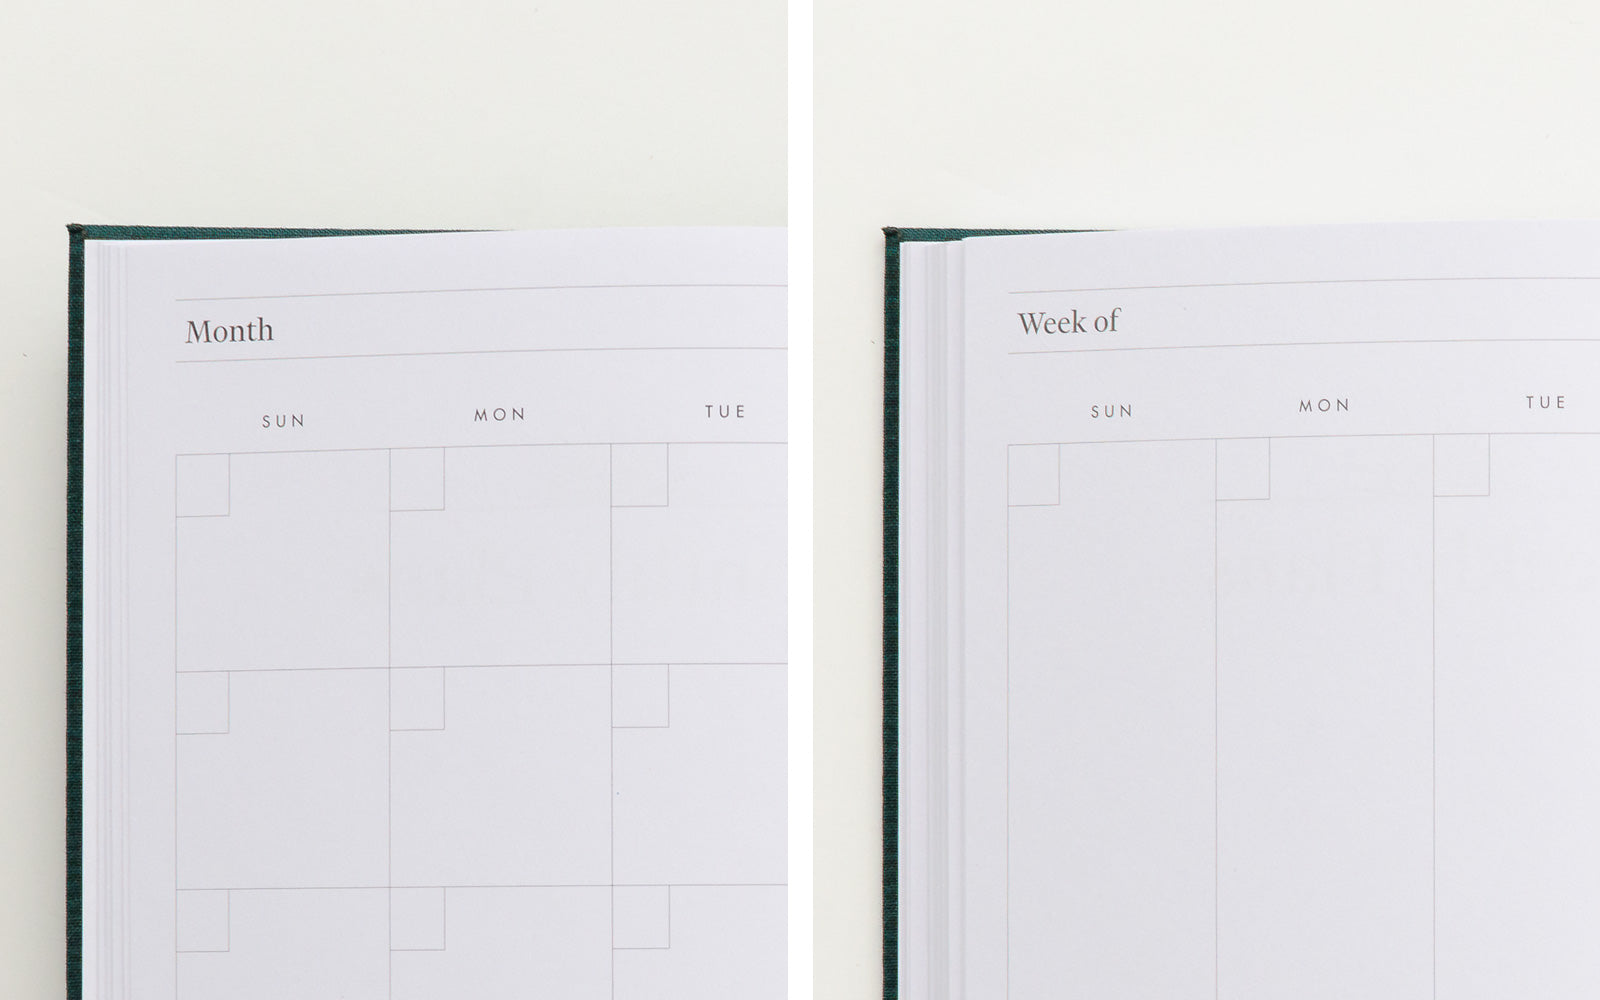 Undated monthly and weekly plans